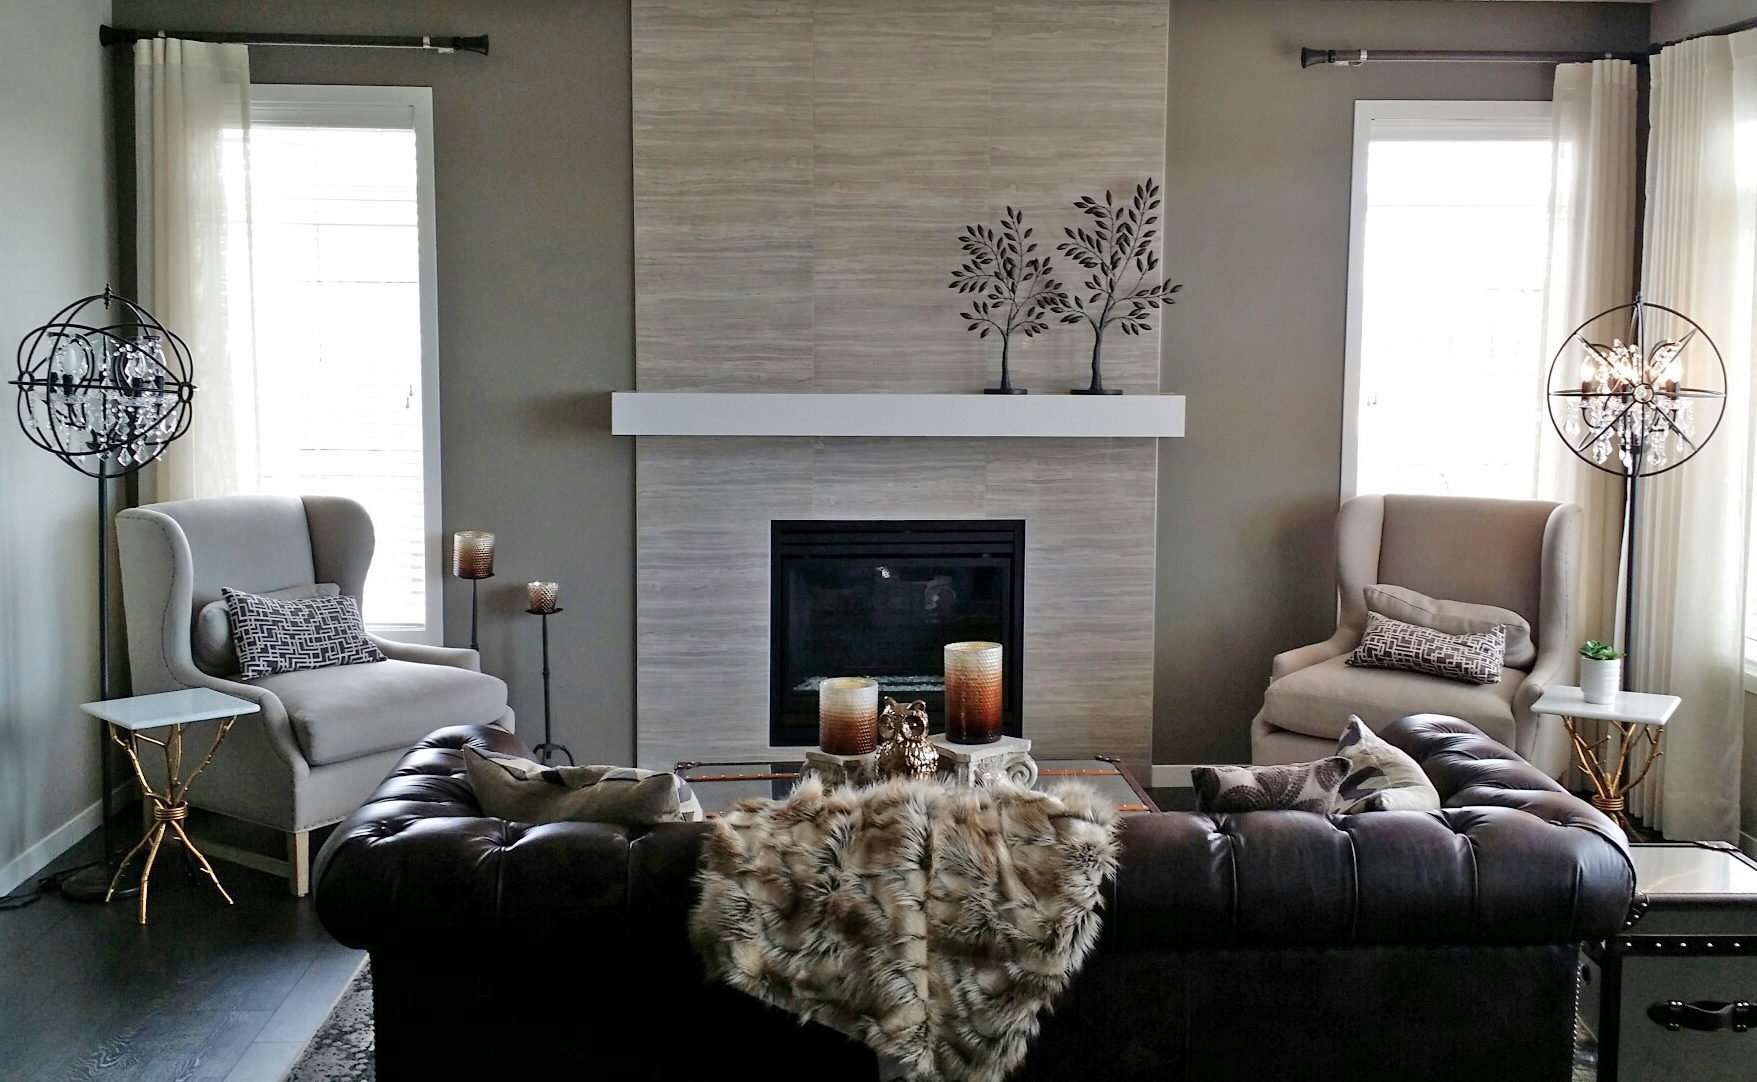 Gonzalez painting painted Family room with Fireplace